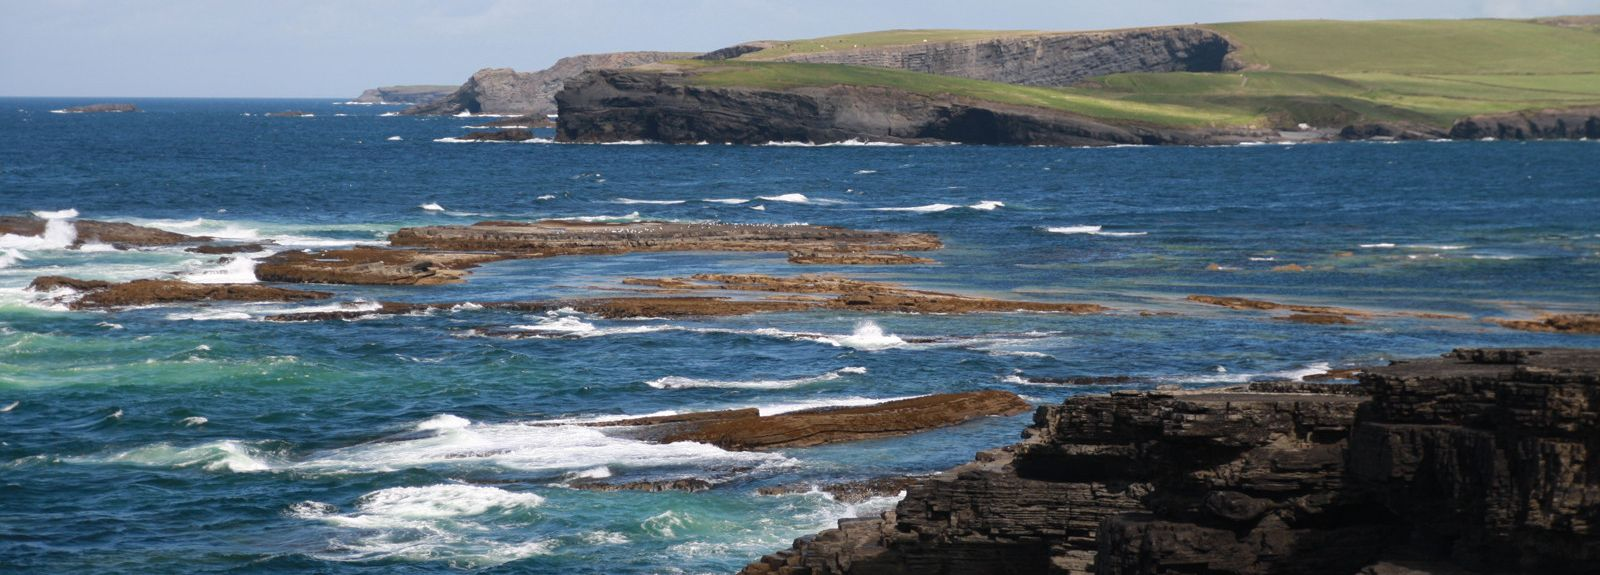 Kilkee, Co. Clare, Ireland